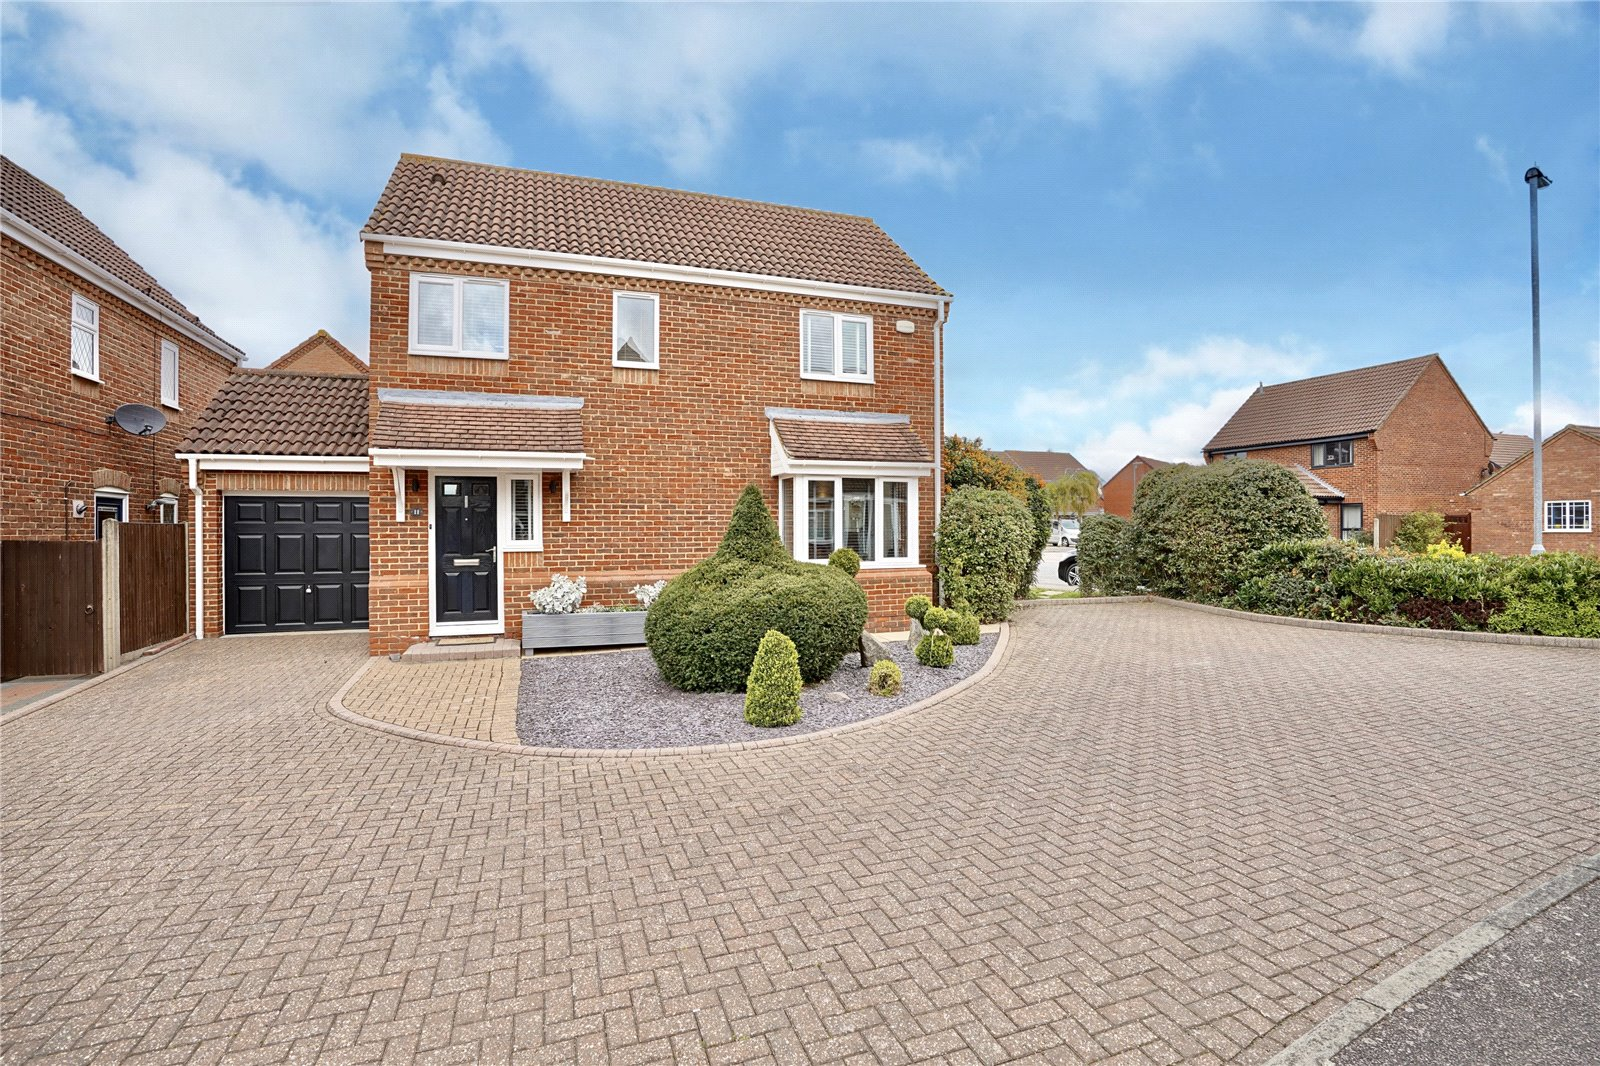 3 bed house for sale in Popham Close, Eaton Socon - Property Image 1